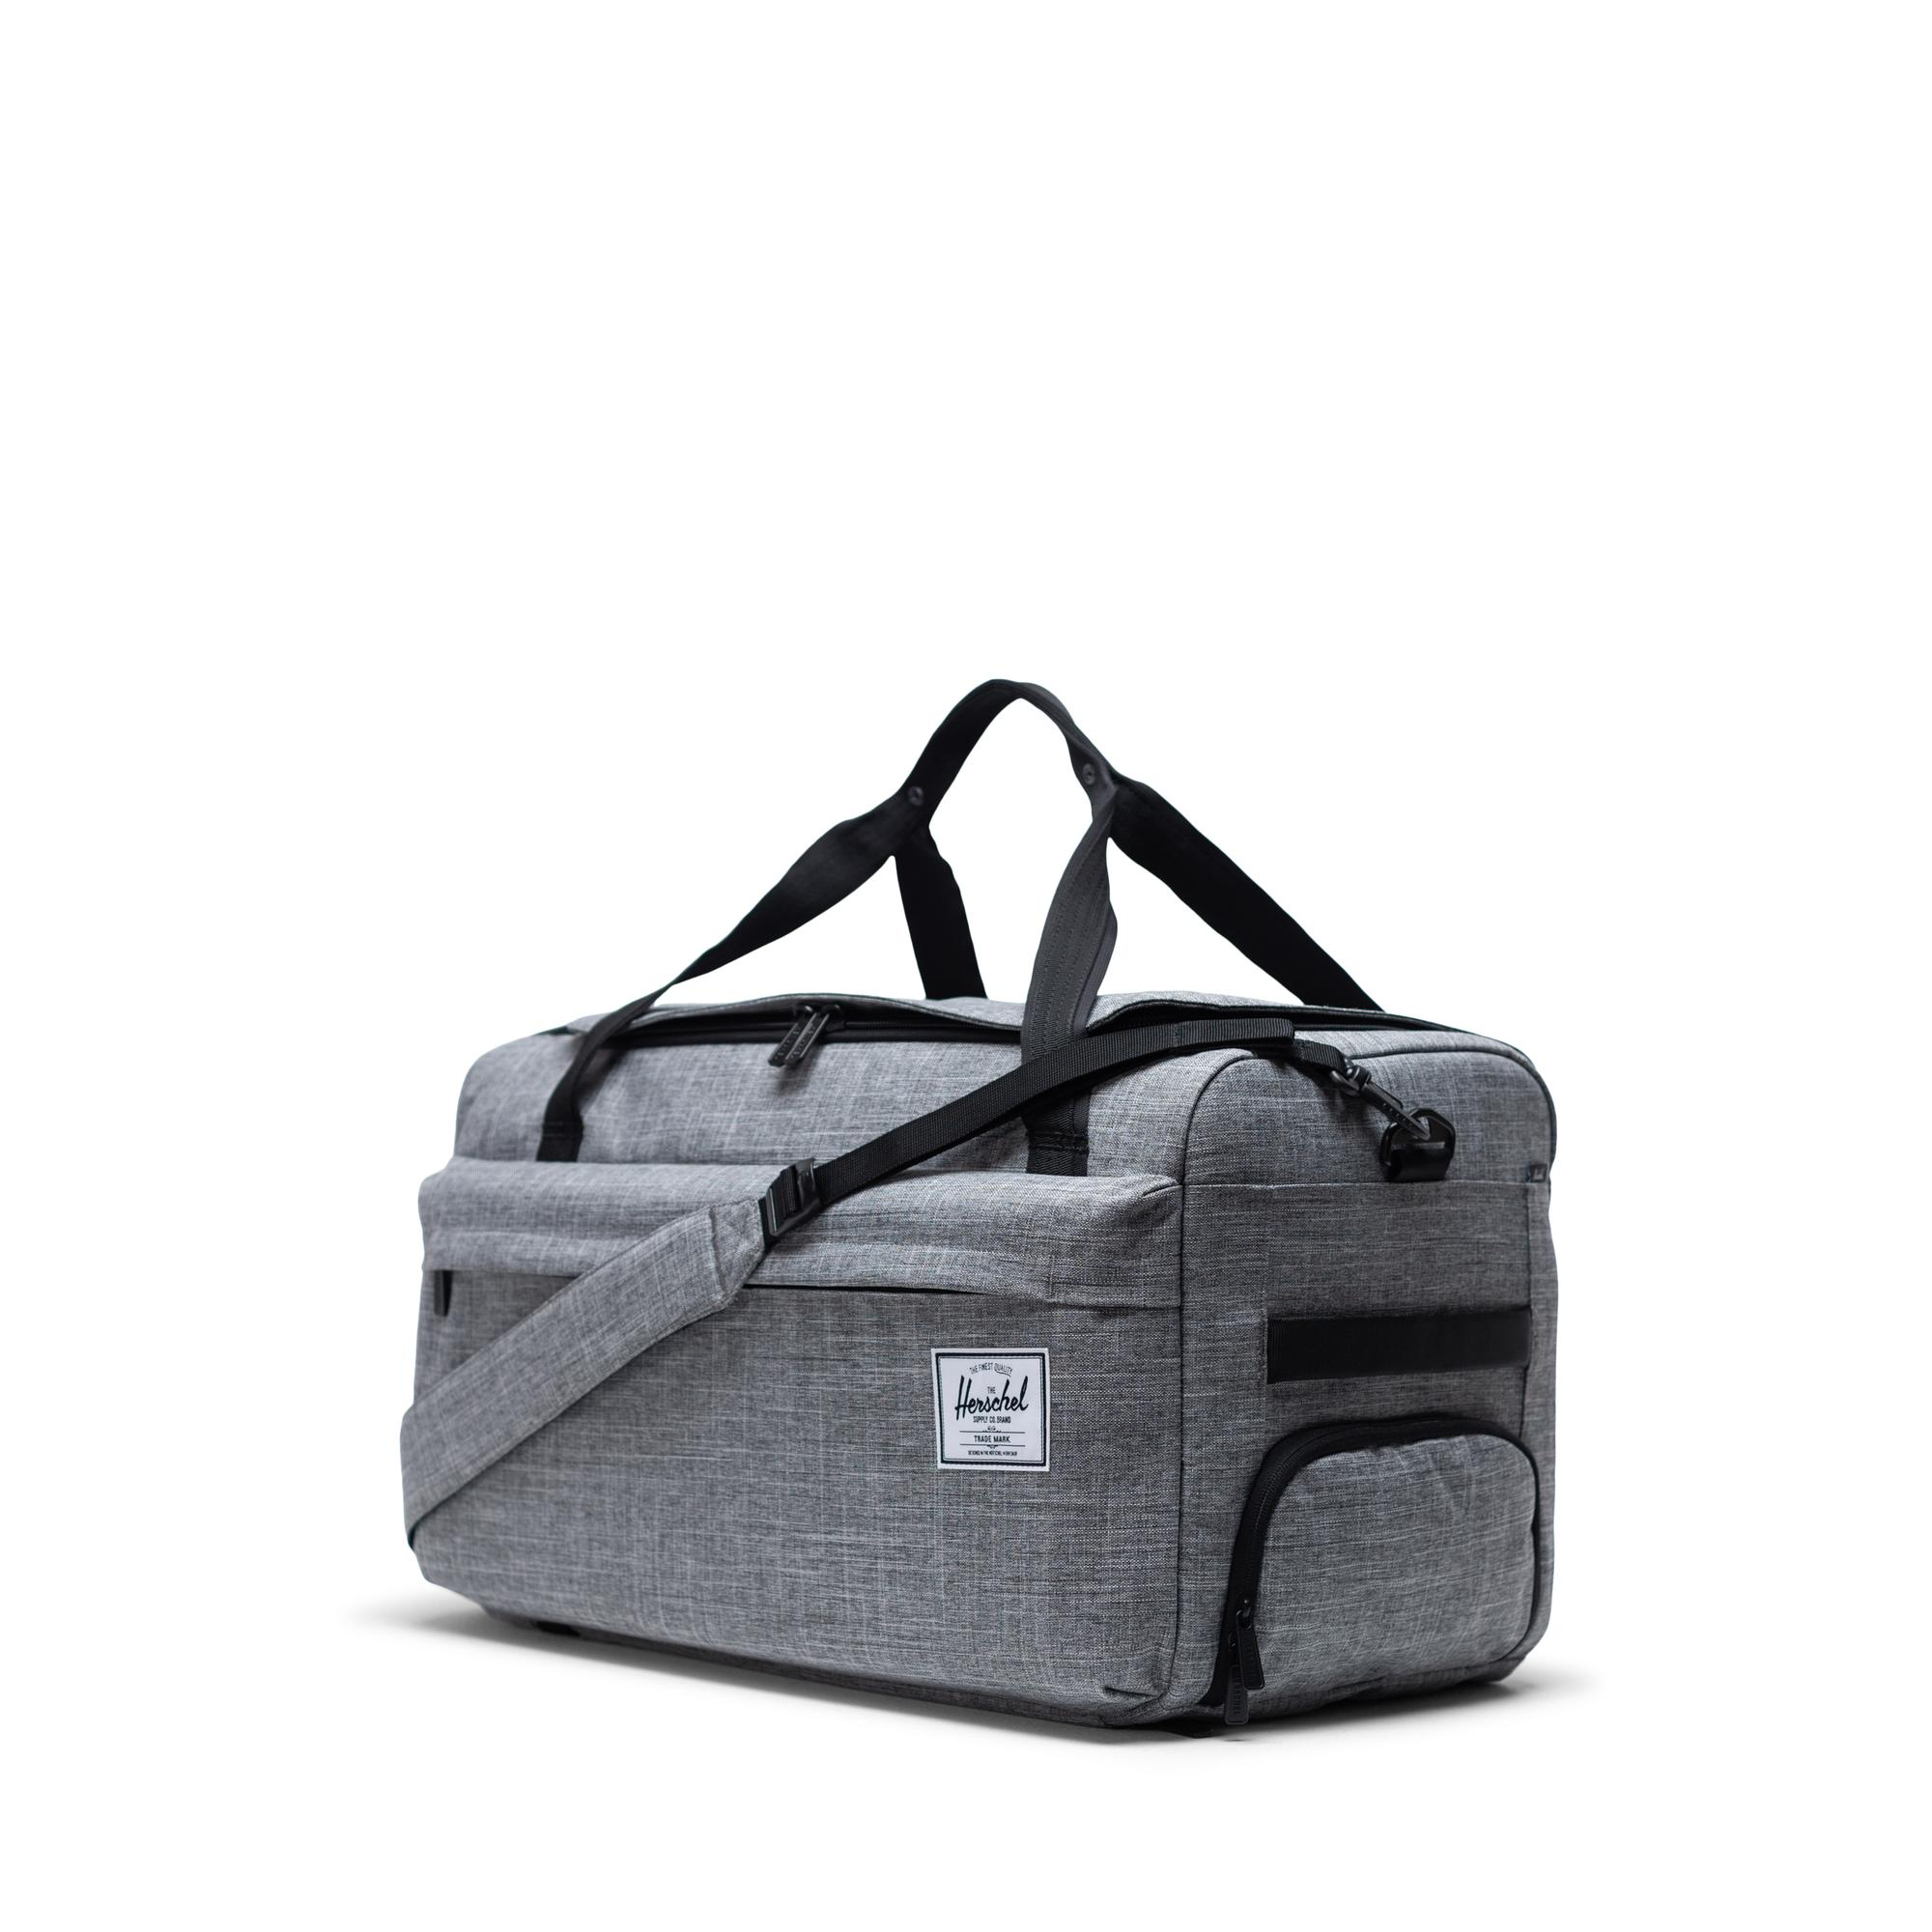 80c44e639076 Outfitter Luggage 50L